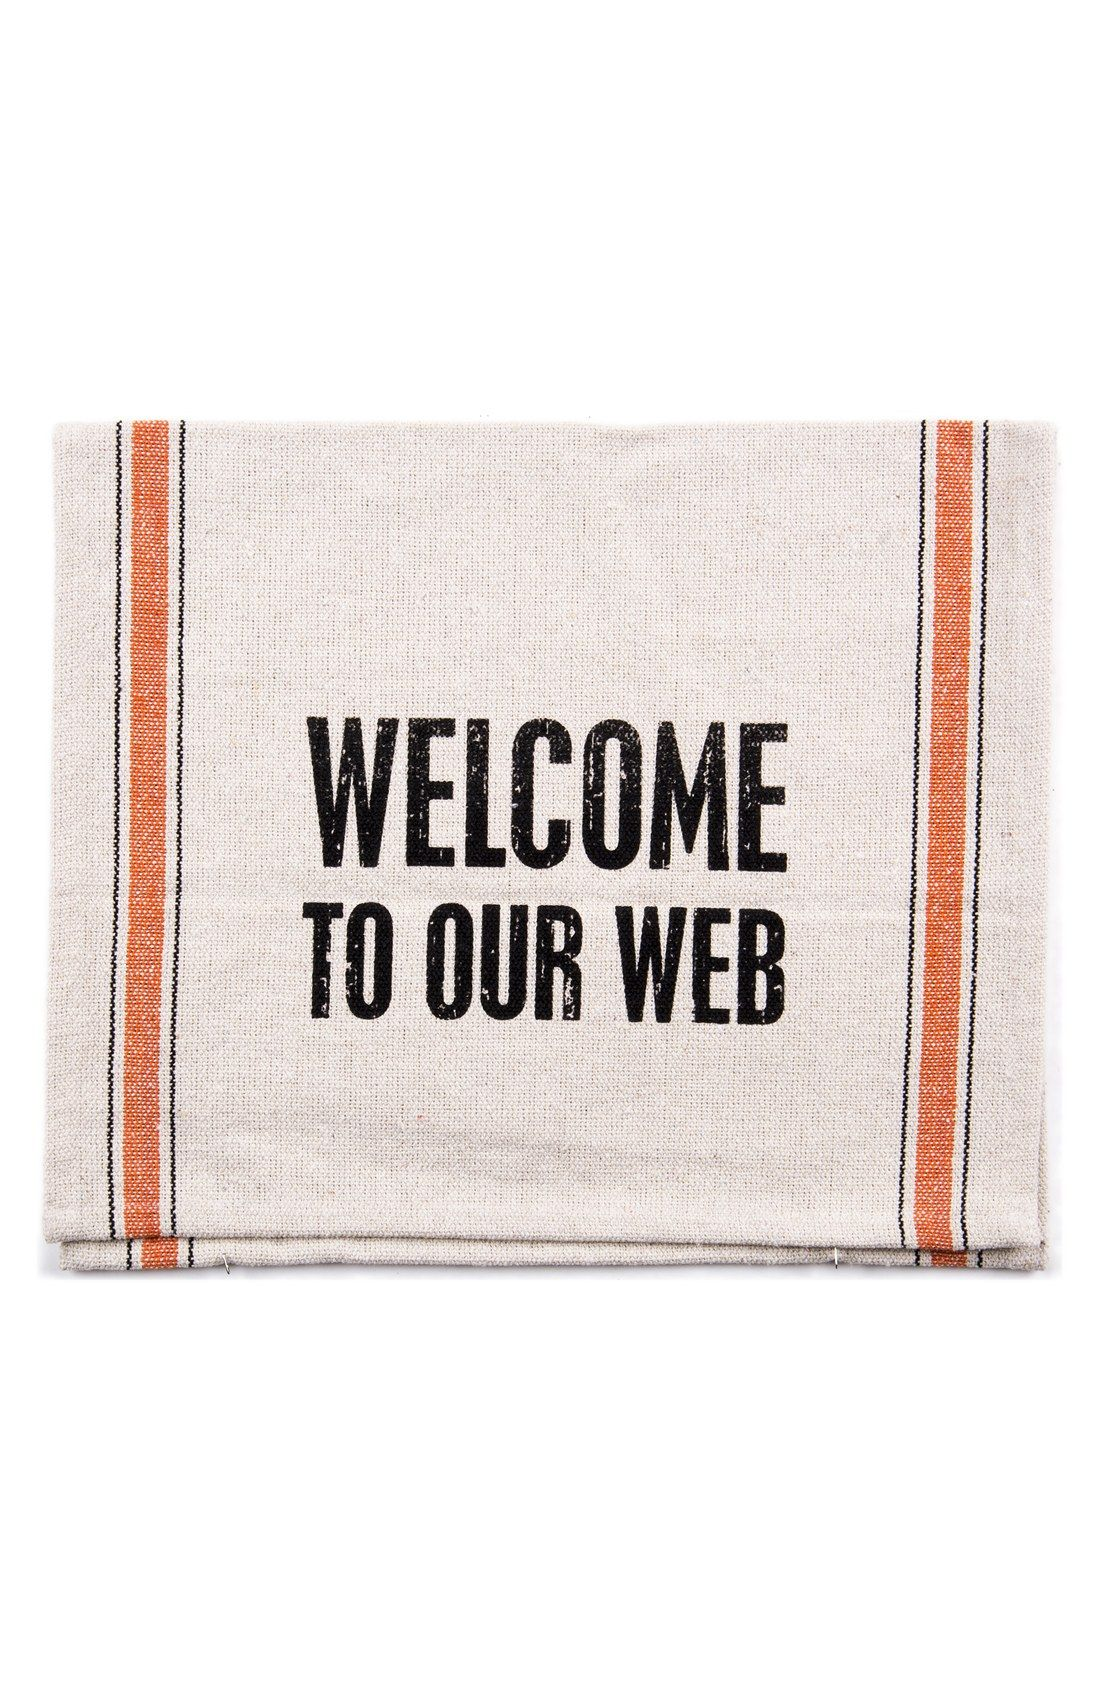 Welcome to our web tea towel.